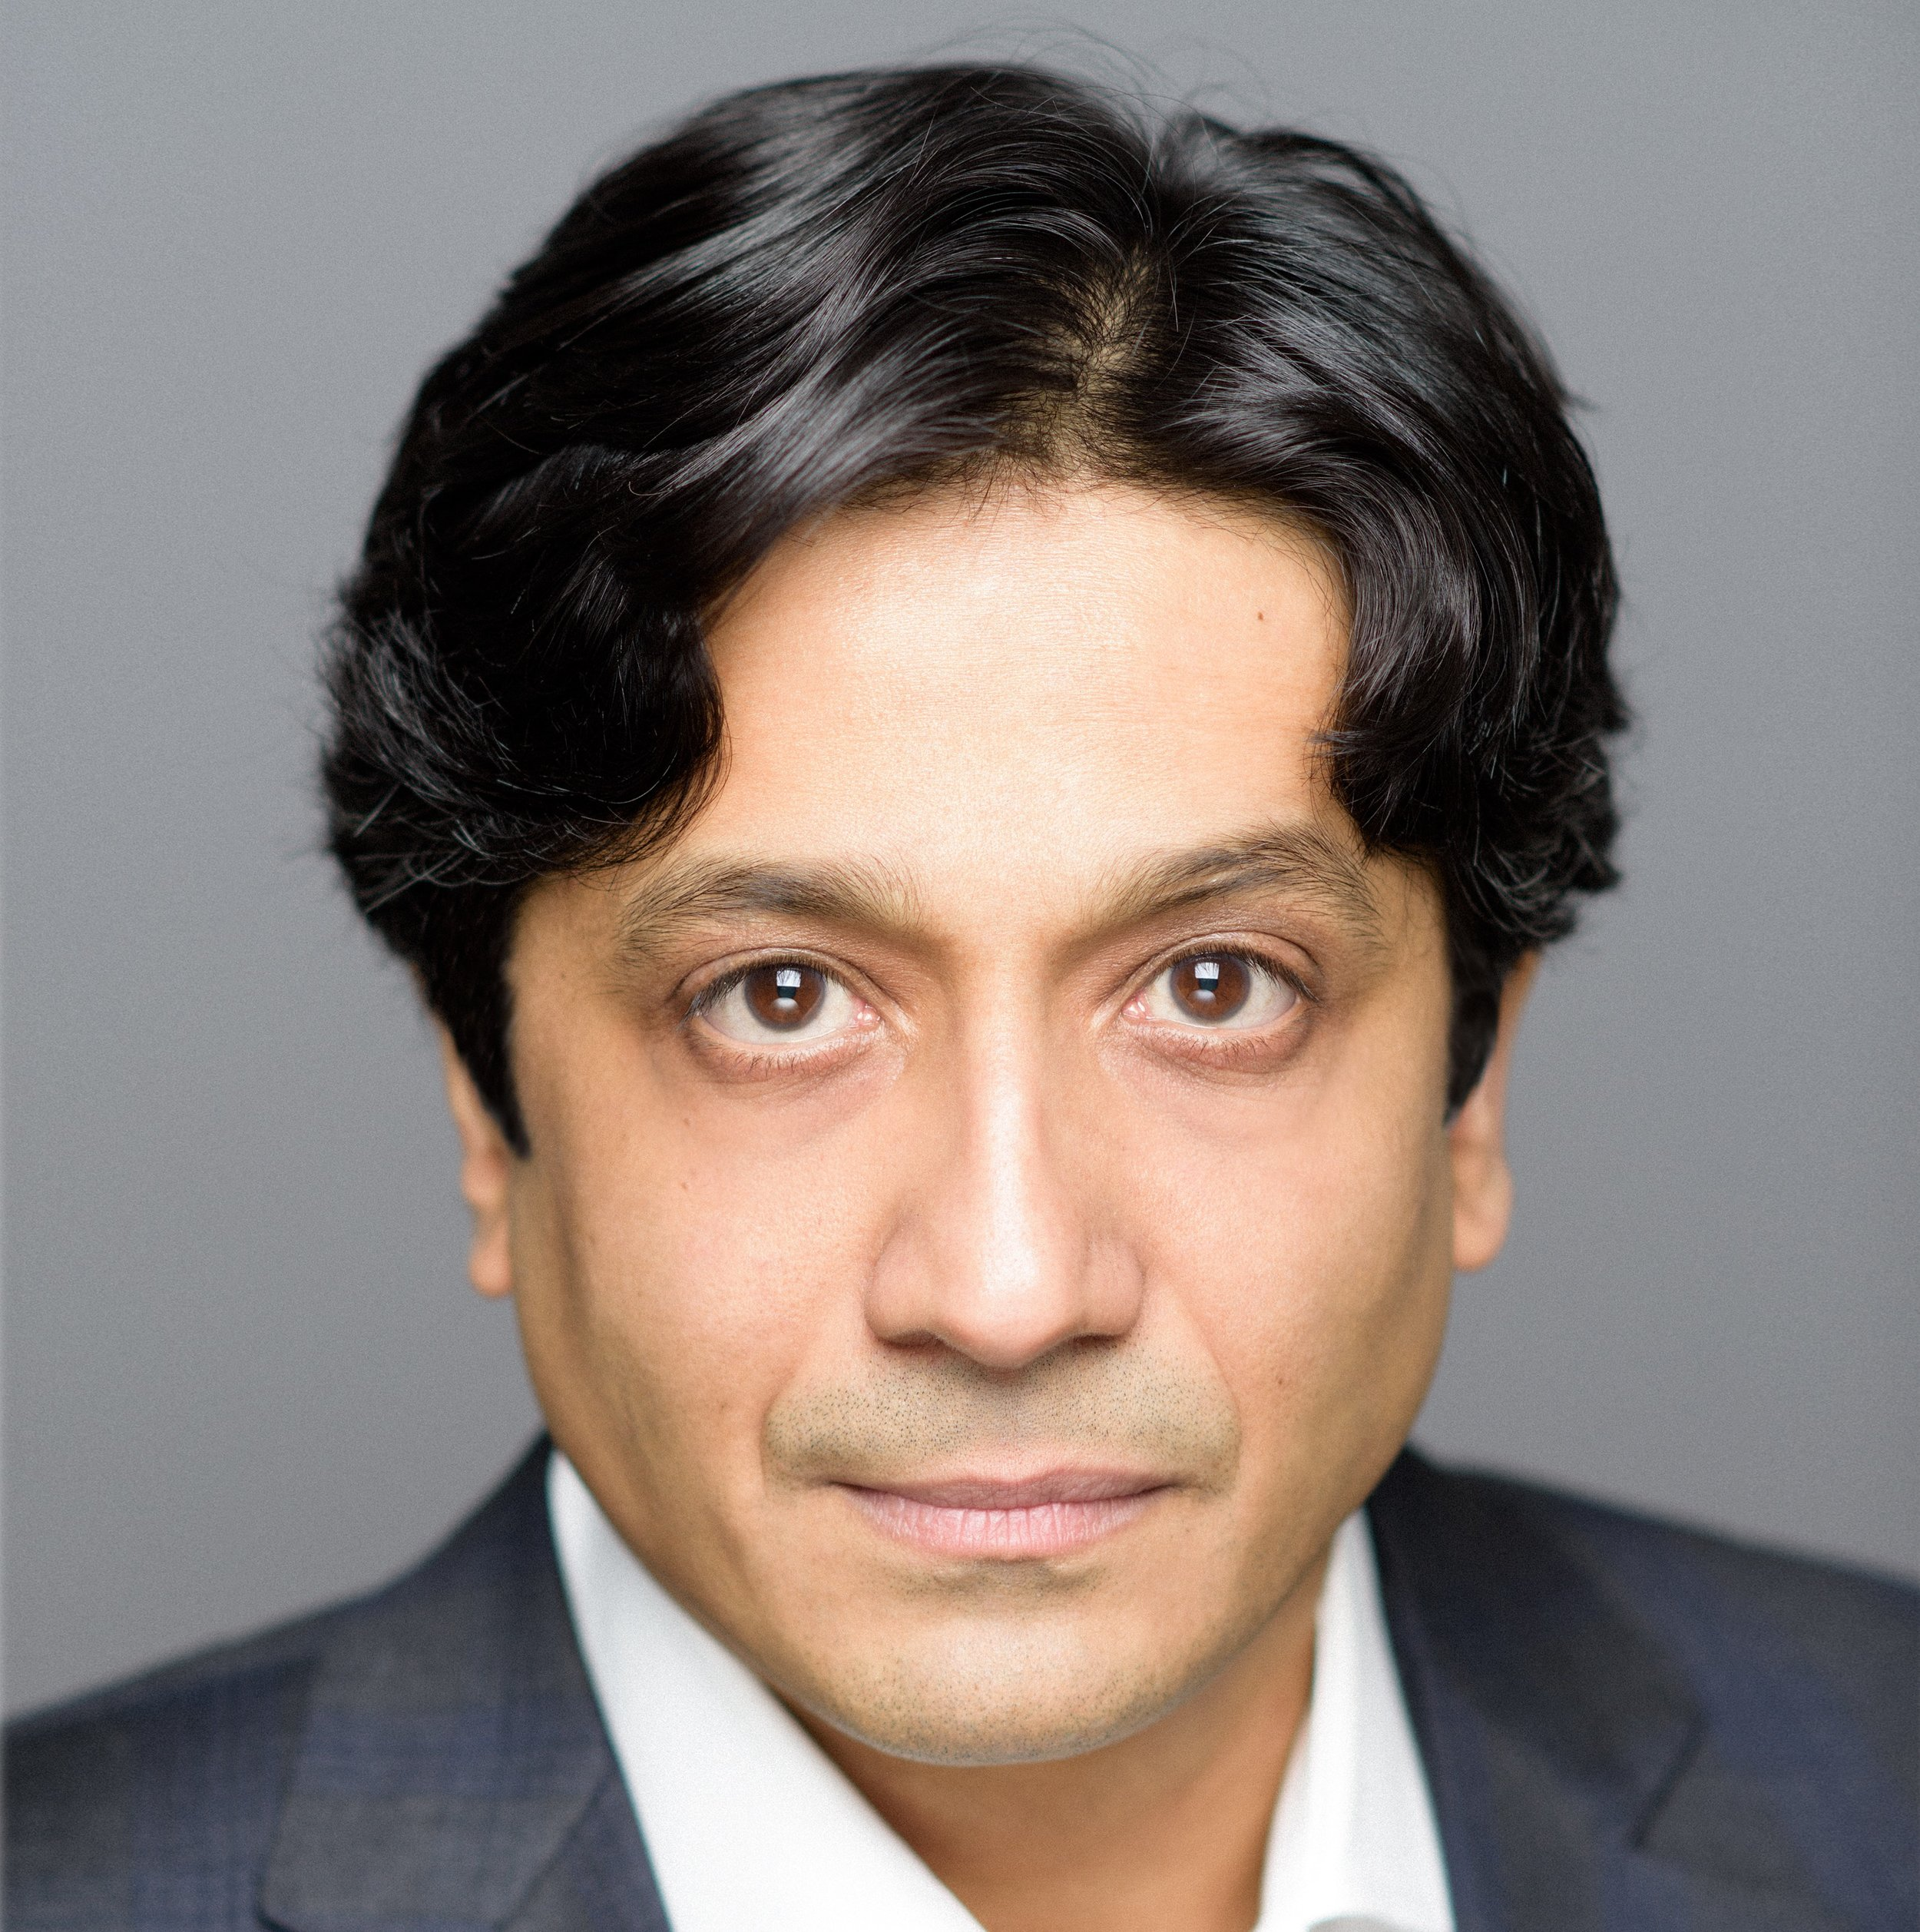 Prof. Arun Sundararajan | NYU Stern | The Sharing Economy and the Rise of Crowd-Based Capitalism | RISING MINDS | Free lectures exploring the intersection of technology, business and culture.